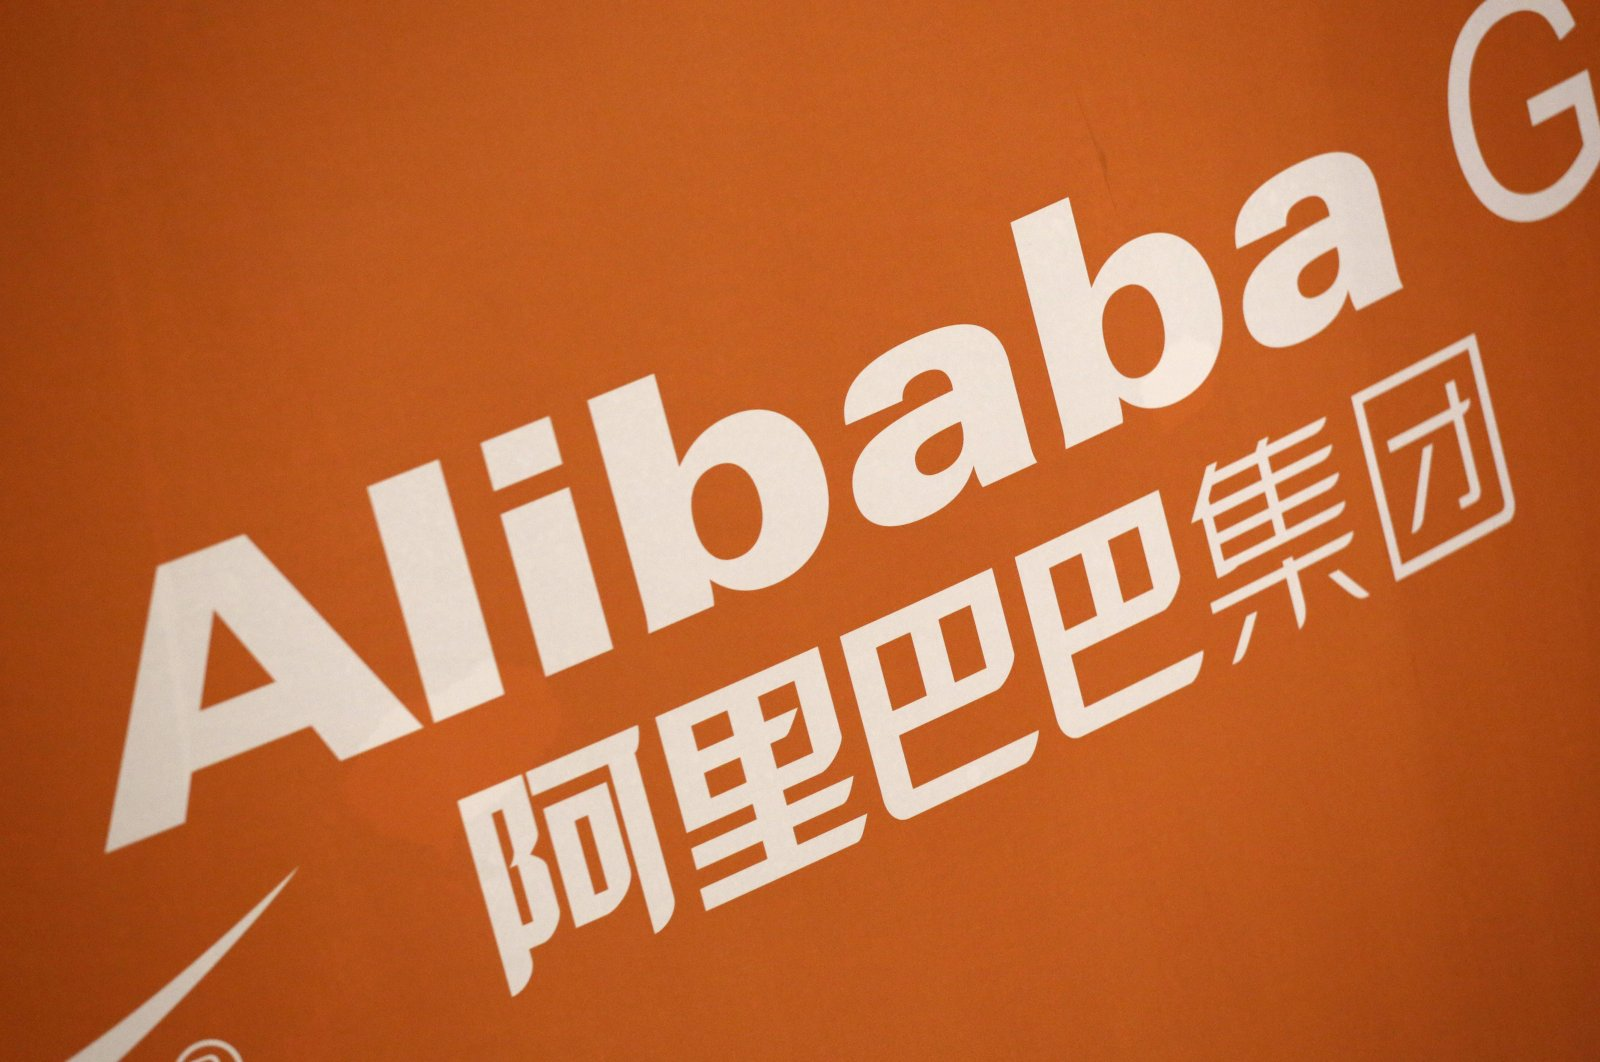 The Alibaba logo is displayed during the company's IPO at the New York Stock Exchange, New York City, New York, U.S., Sept. 19, 2014. (AP Photo)